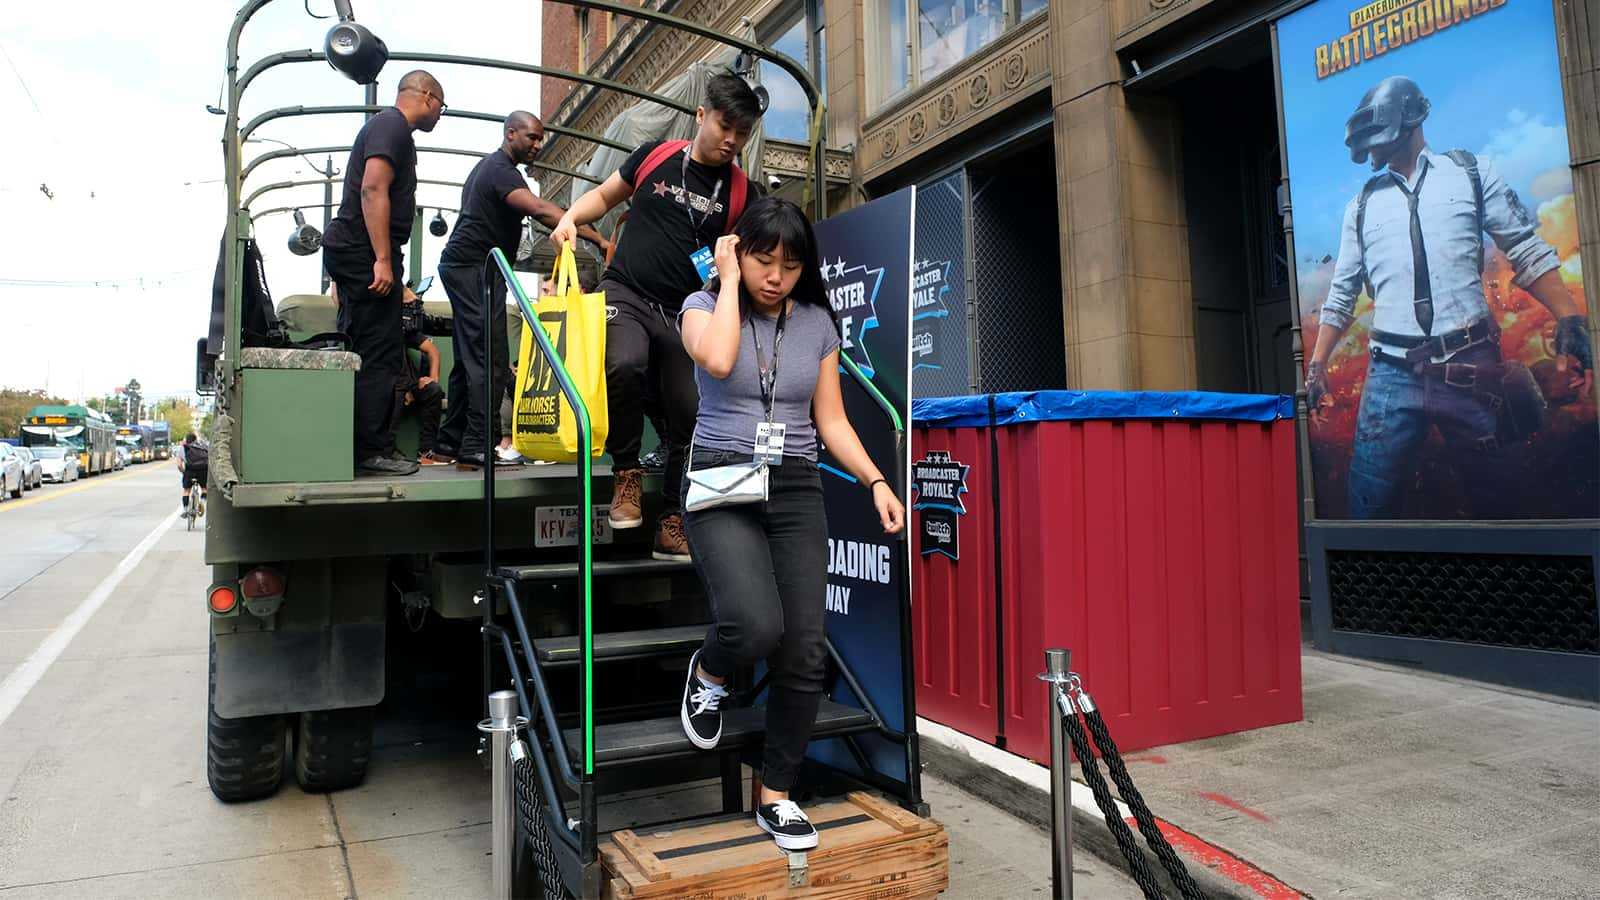 Twitch attendees disembark the PUBG transport truck.